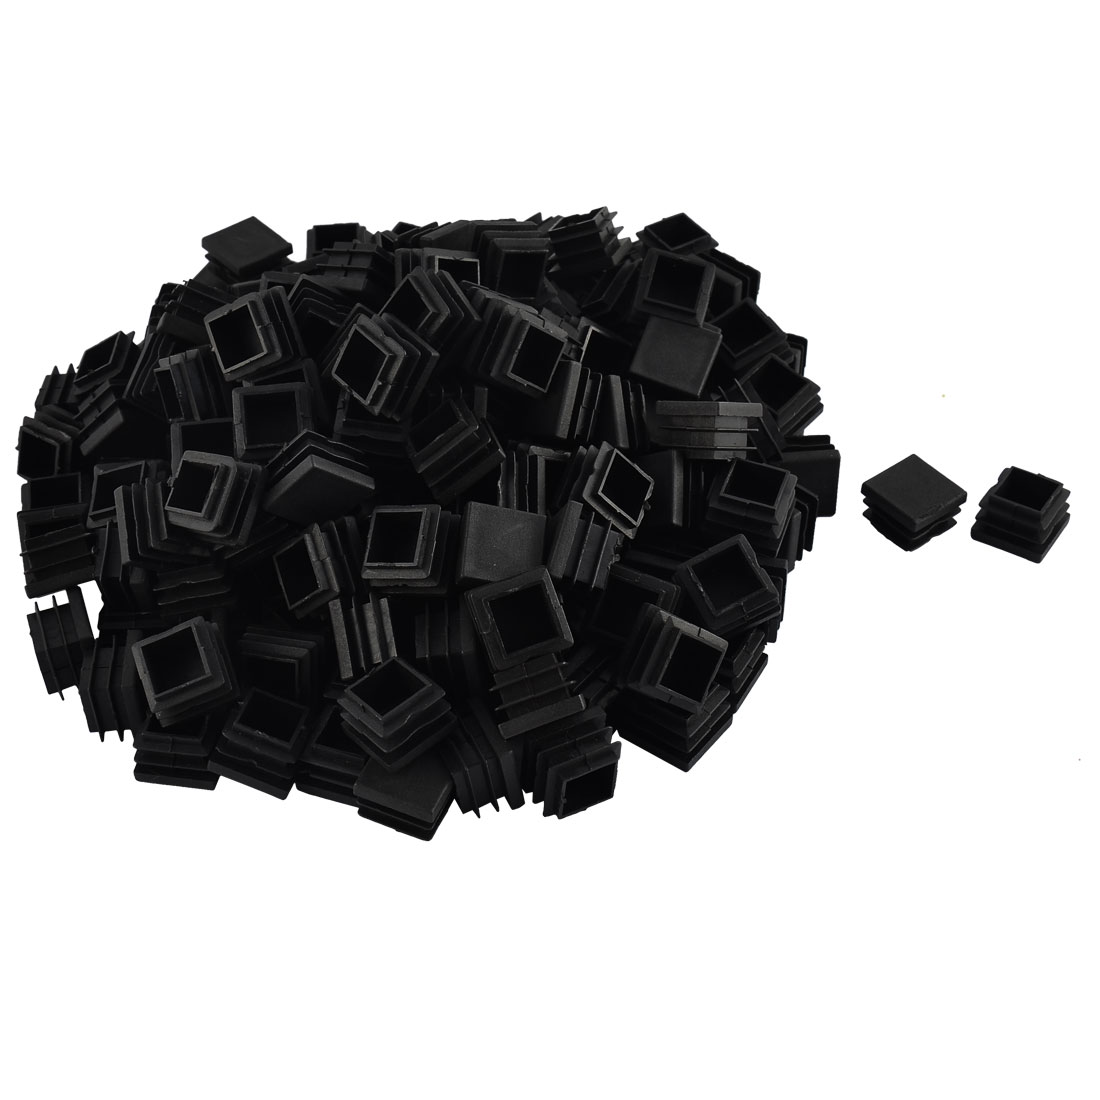 Furniture Table Chair Legs Plastic Square Tube Pipe Insert Cap Cover Black 22 x 22mm 200pcs